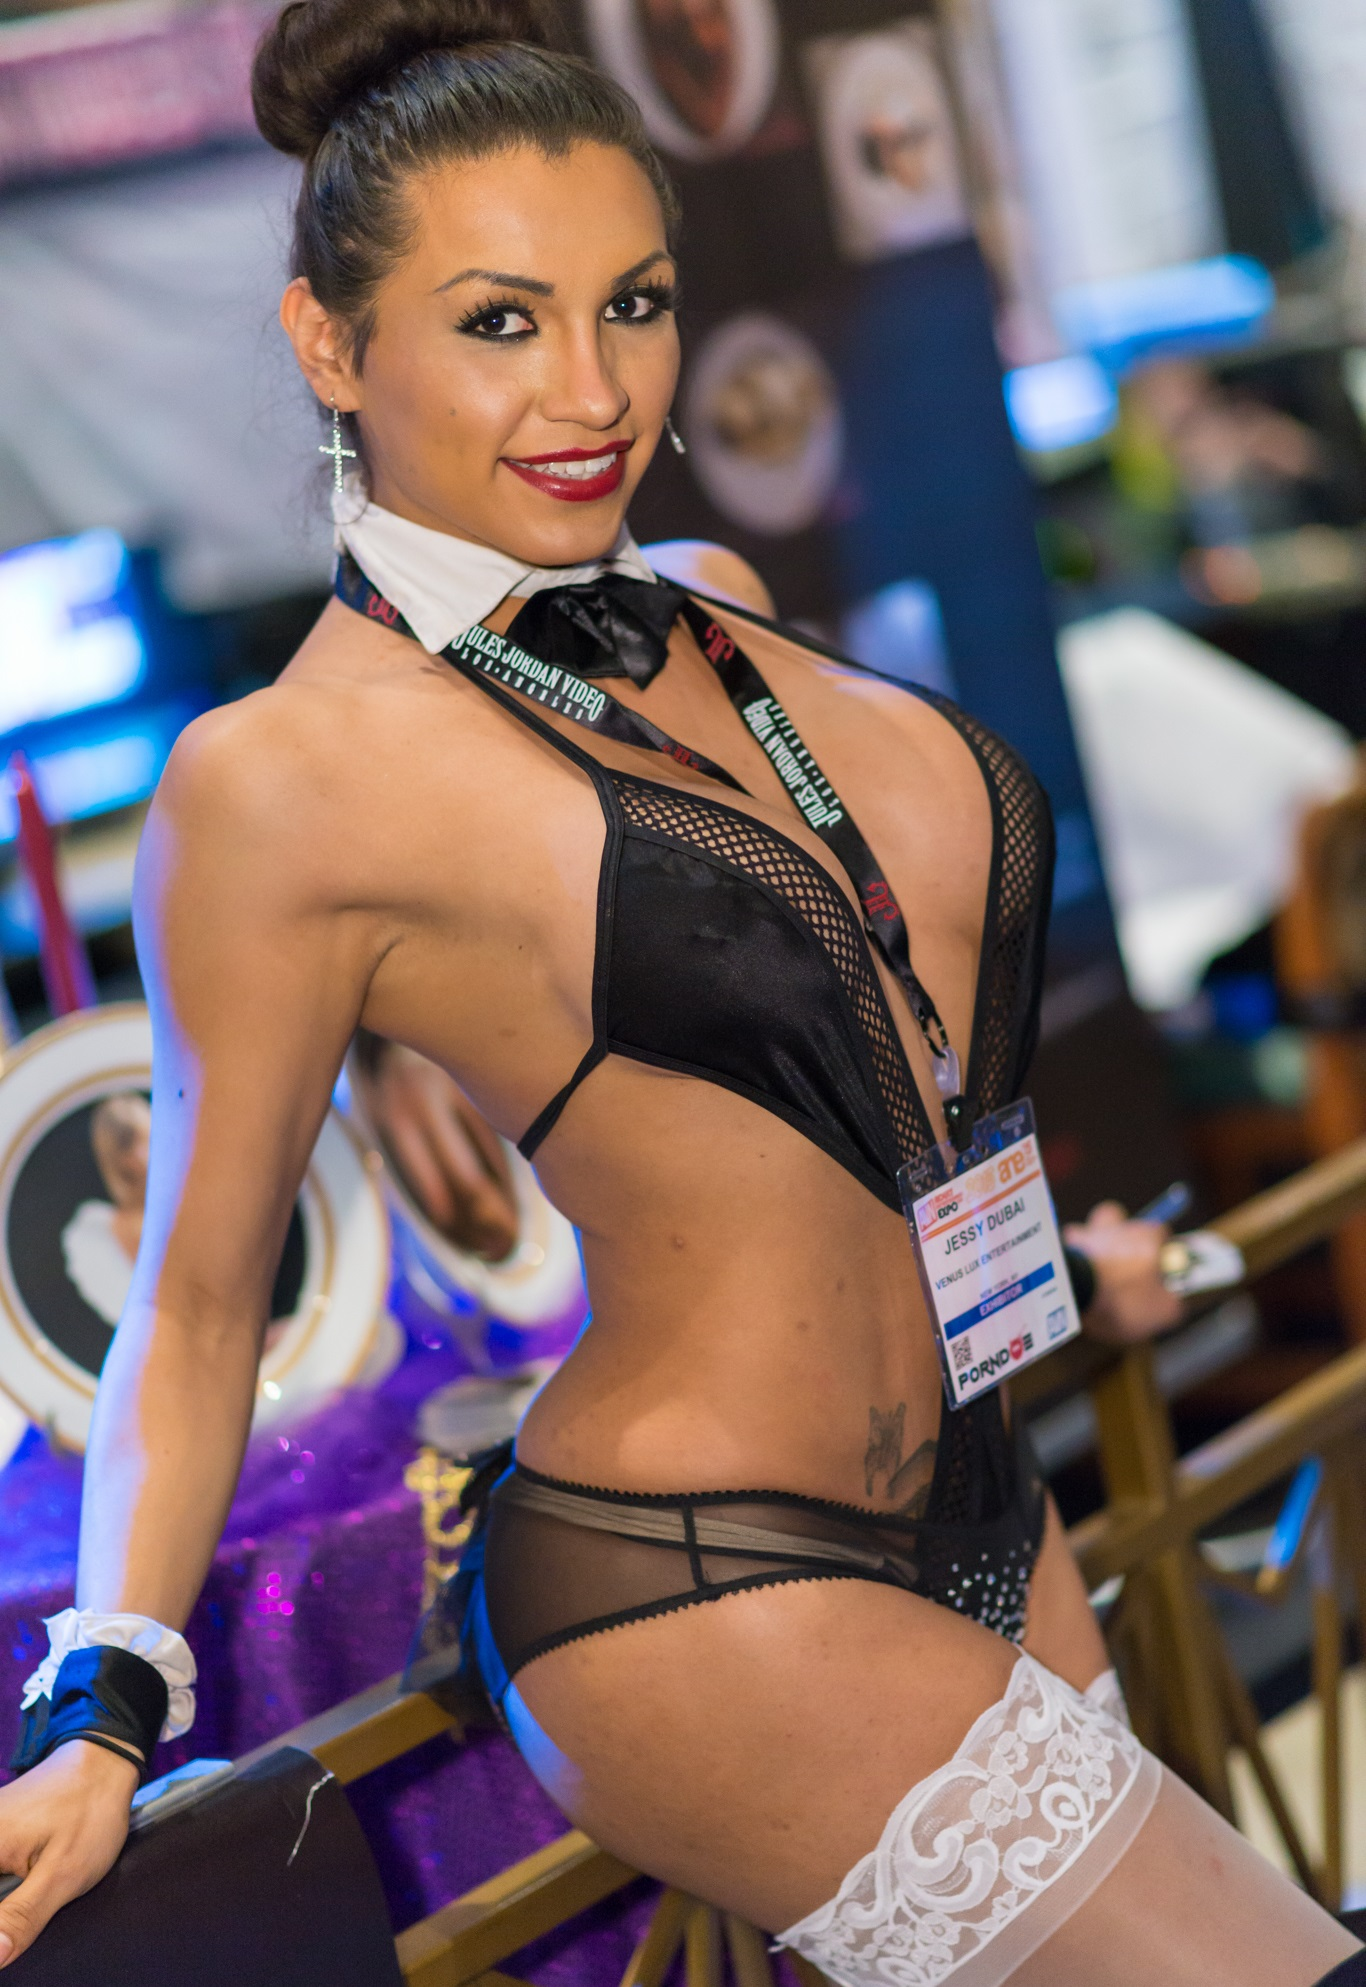 Jessy Dubai at the AVN Expo Awards